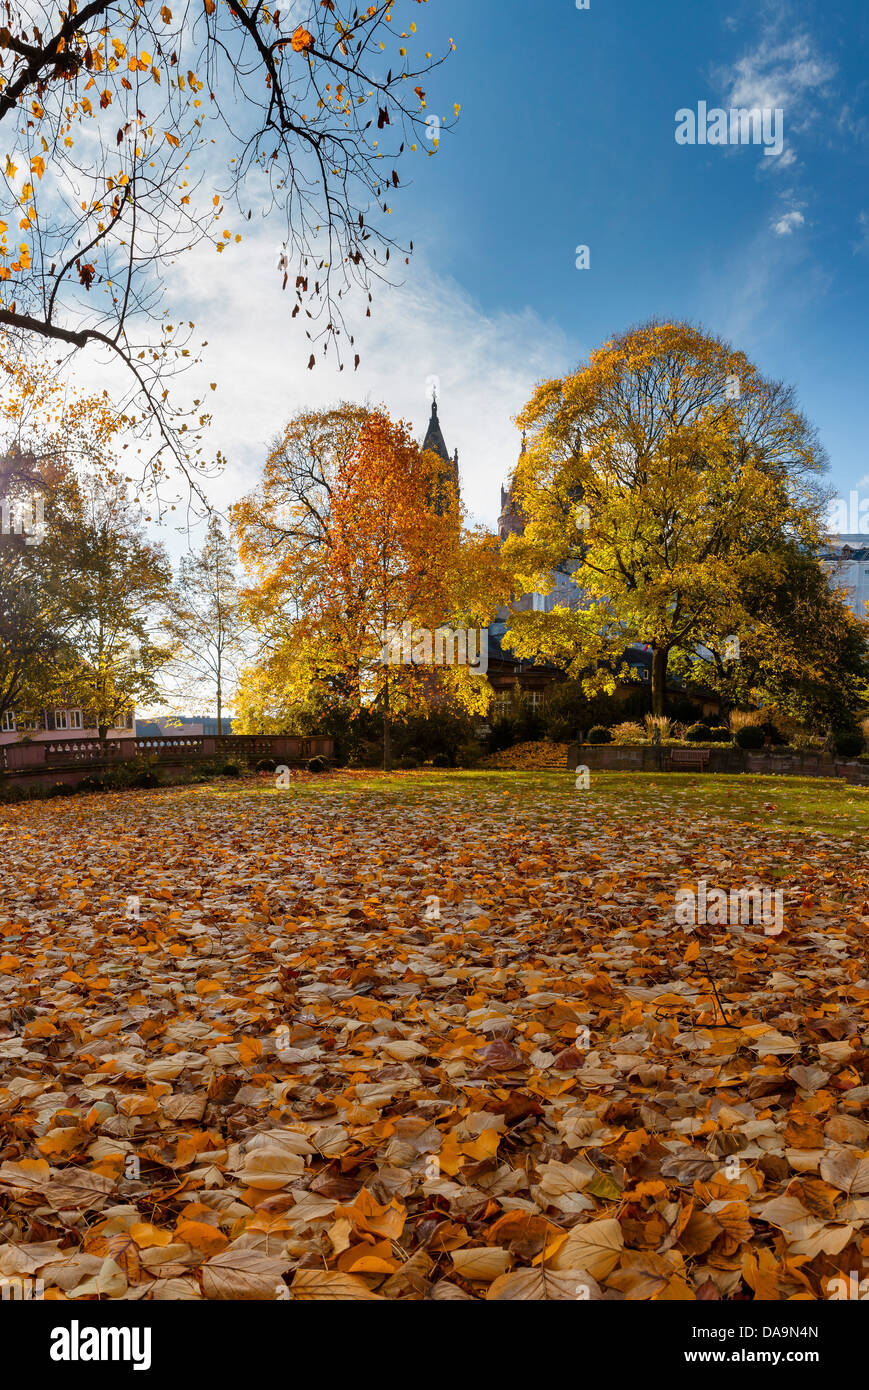 Germany, Europe, Rheinland Pfalz, Worms, cathedral, church, monastery, forest, wood, trees, autumn, autumn leafs, - Stock Image